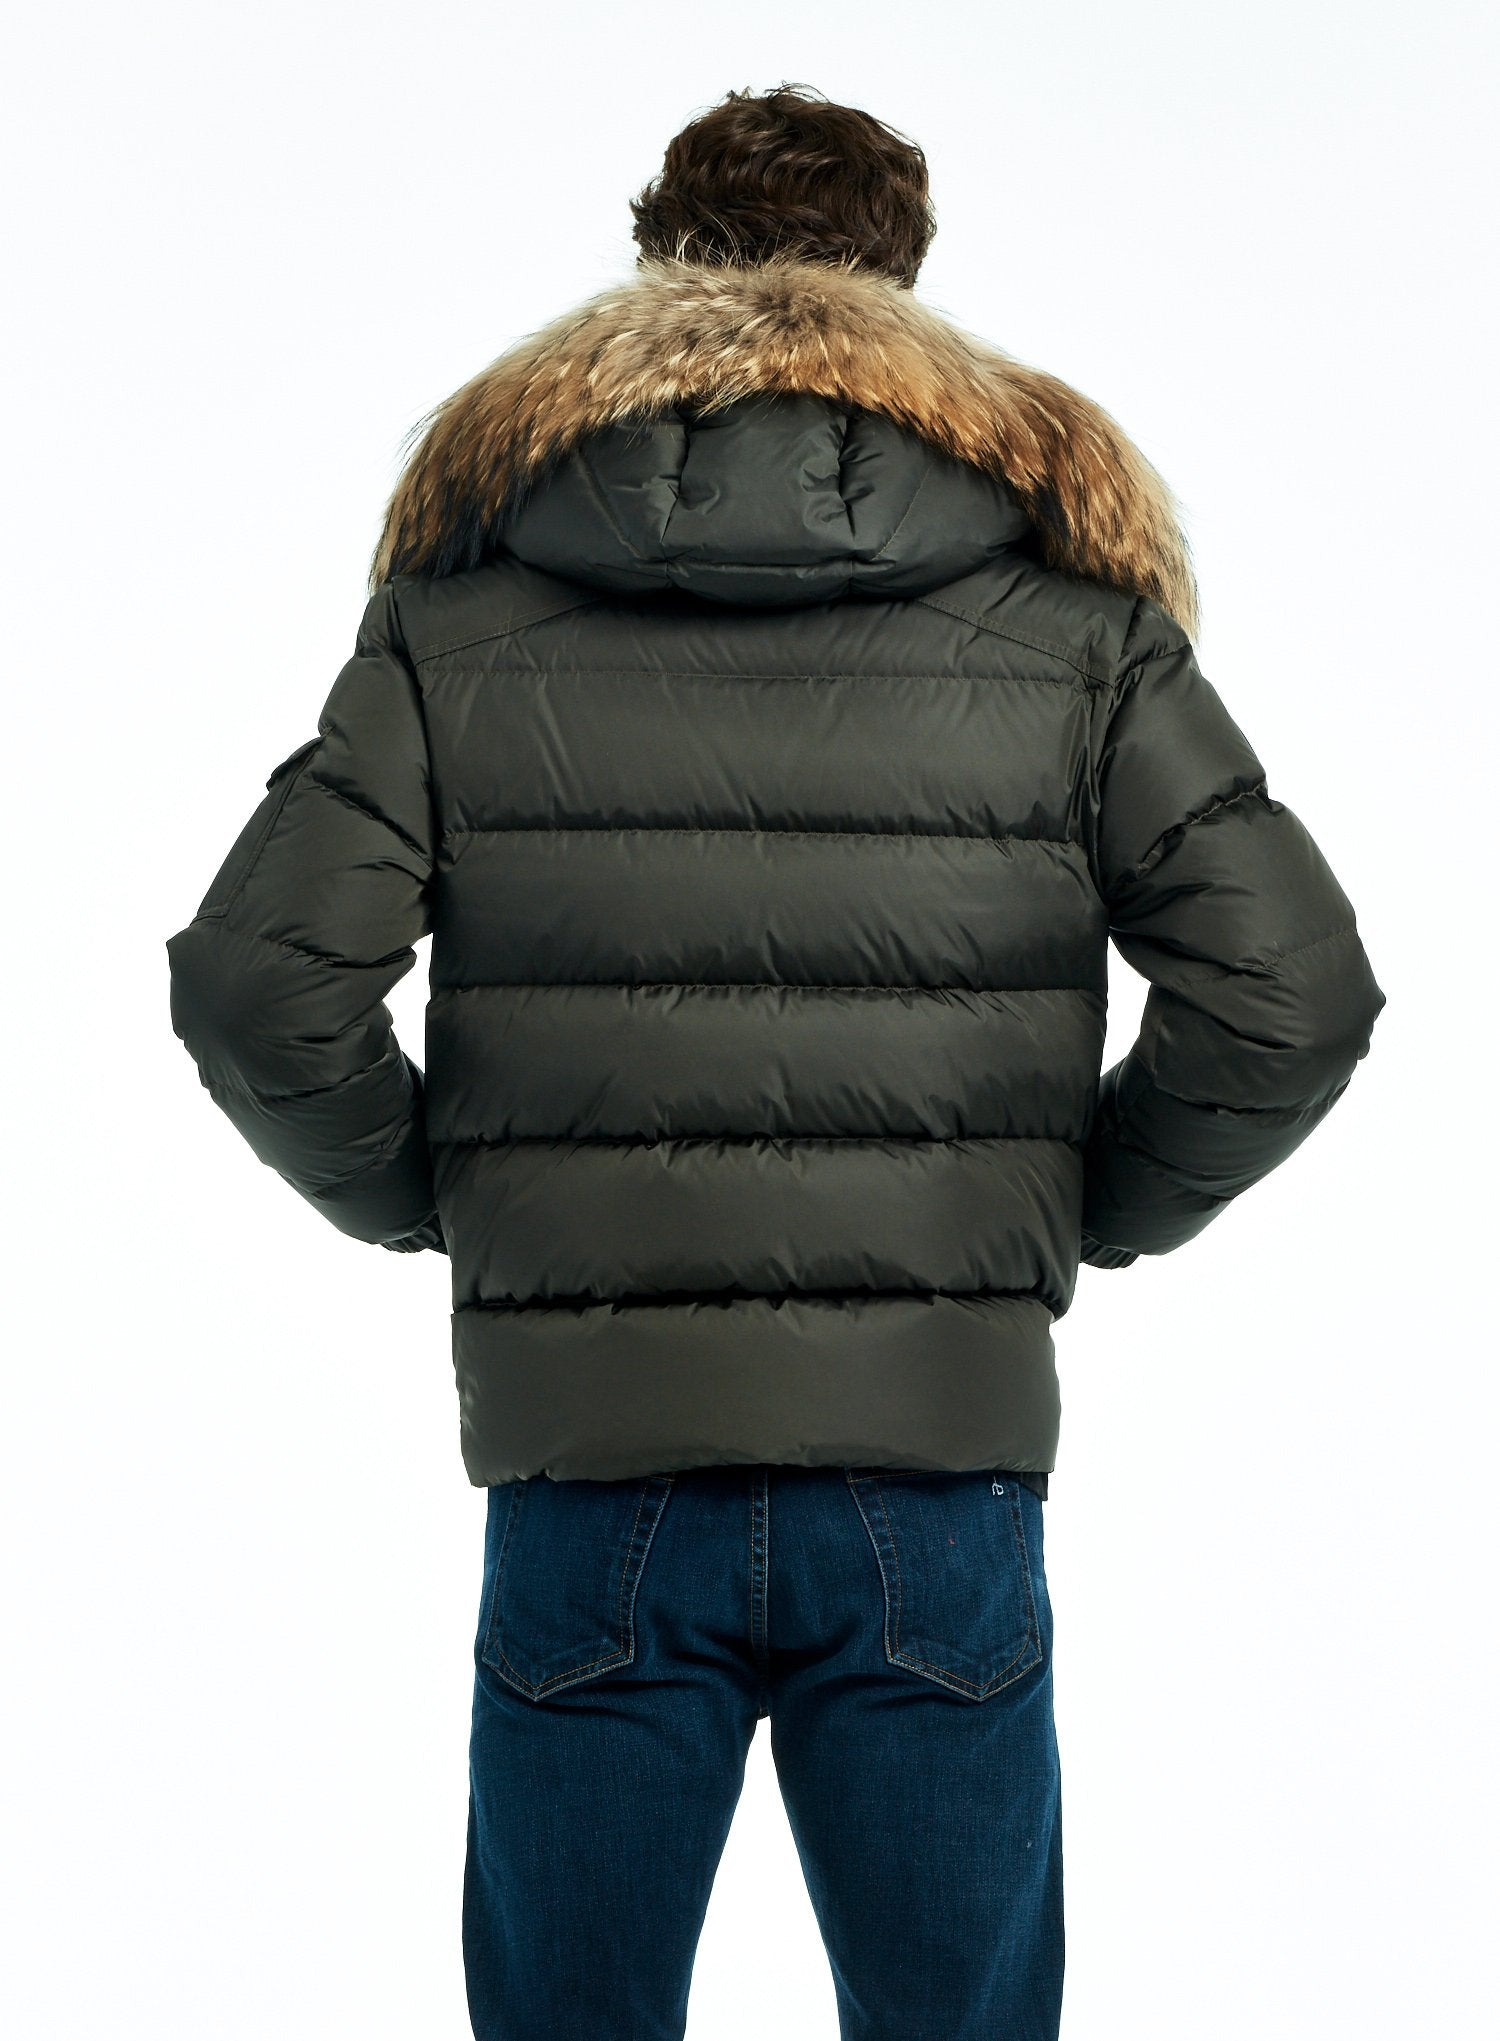 ARCTIC ARCTIC - SAM. New York Sam nyc jacket